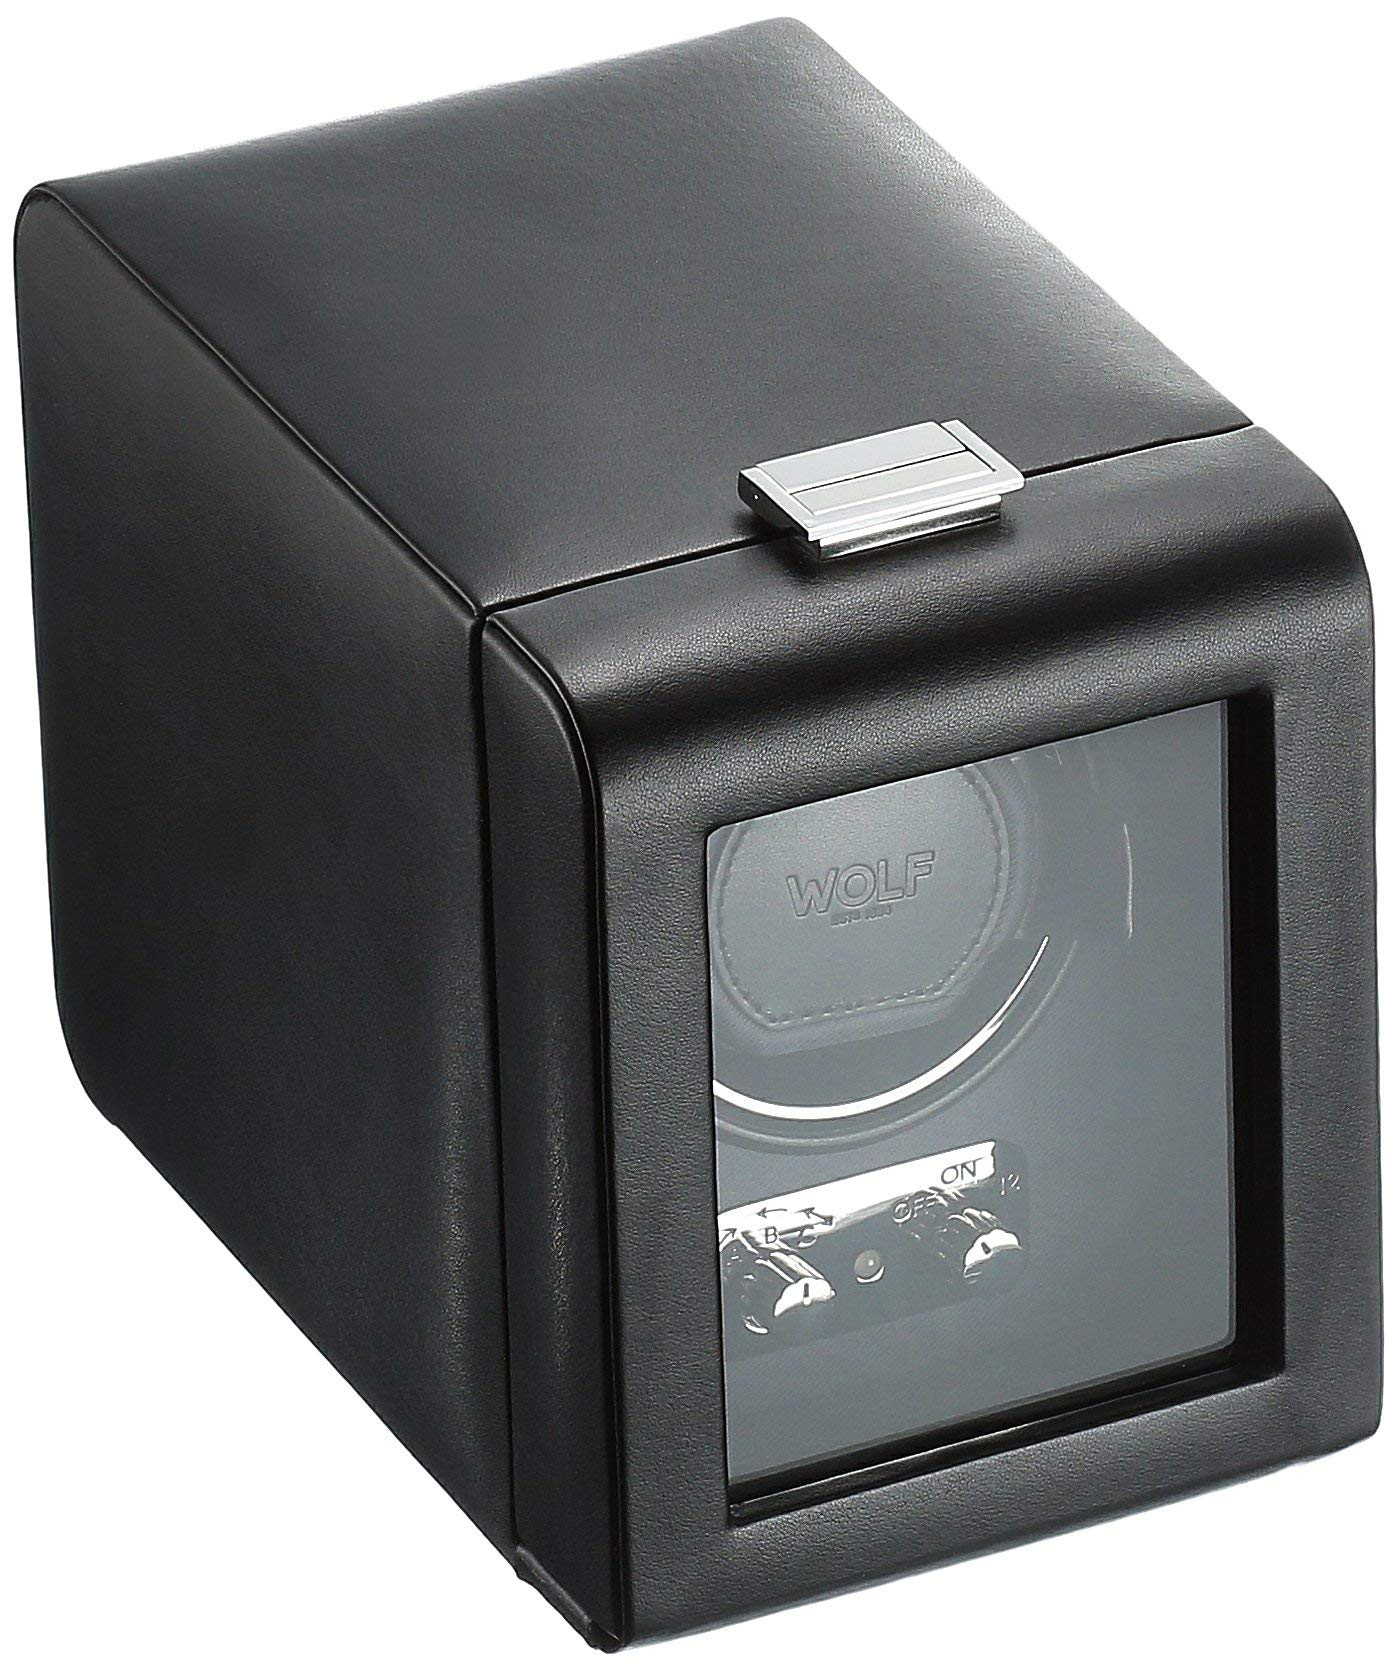 WOLF 270002 Heritage Single Watch Winder with Cover, Black by WOLF